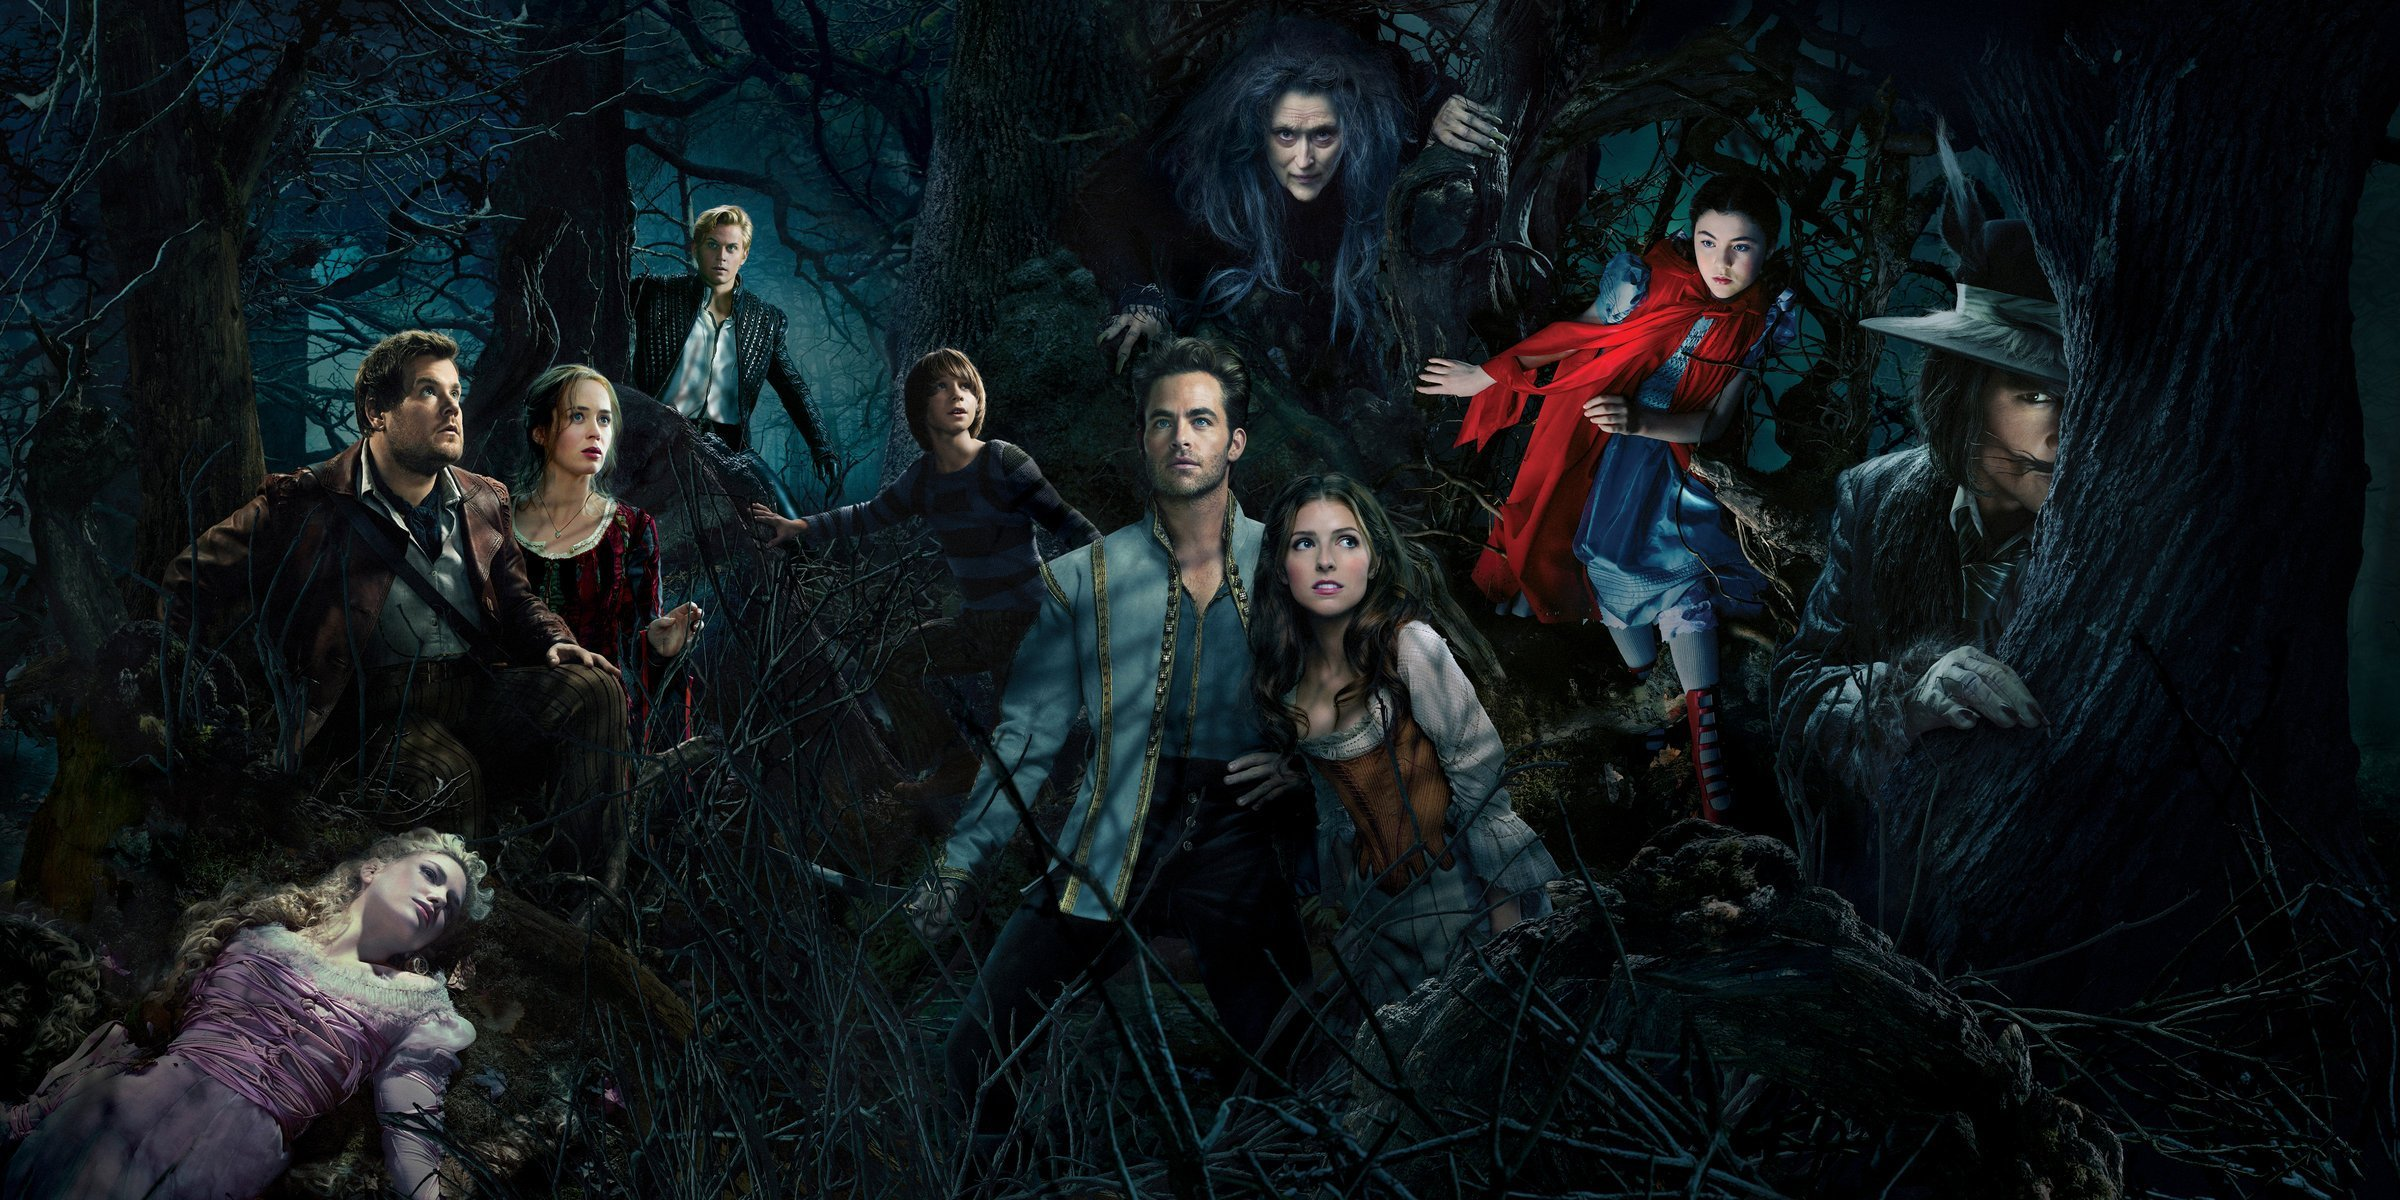 Into The Woods Wallpapers